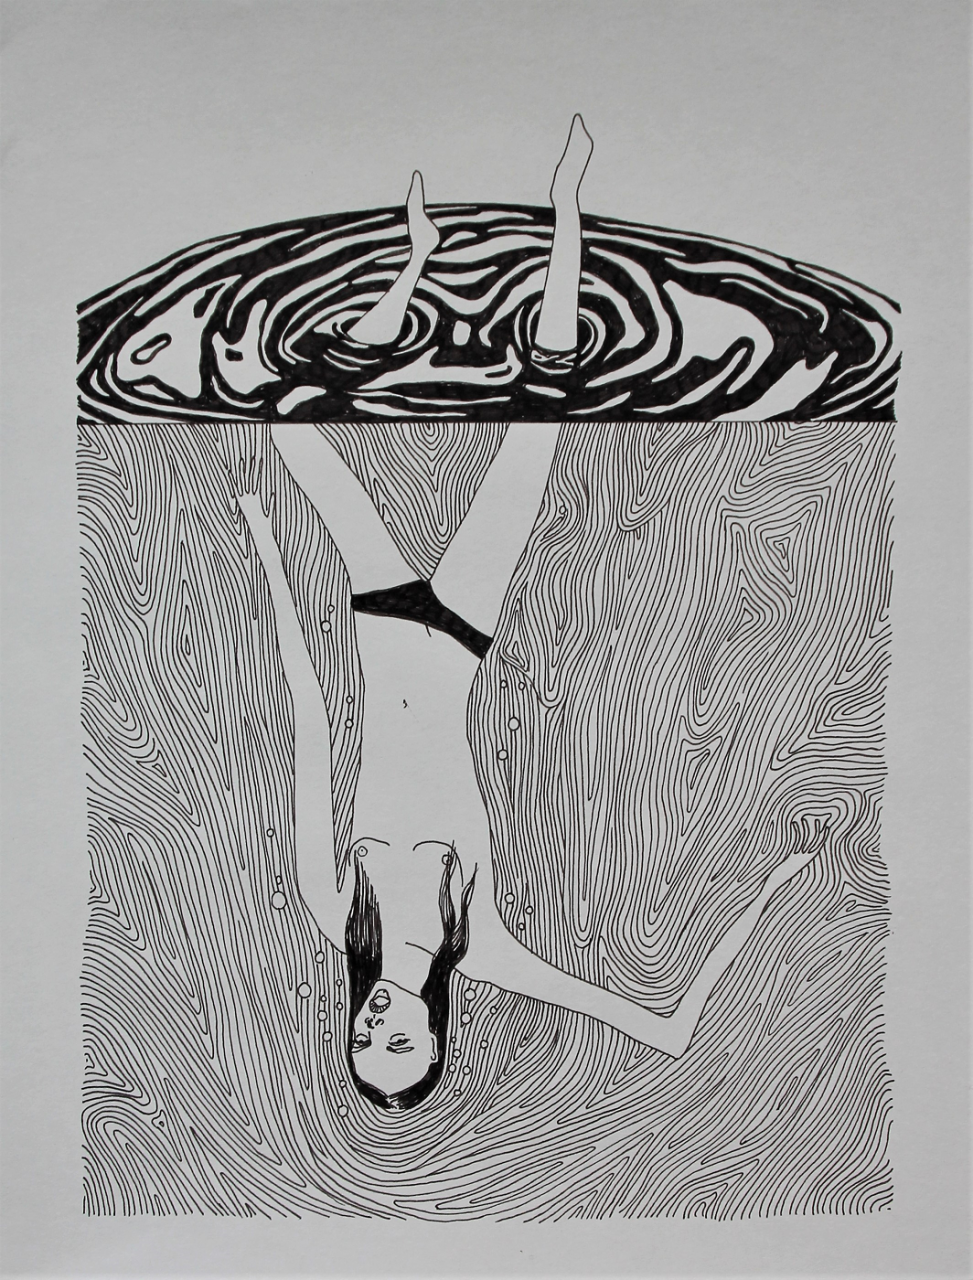 The Drowning 28 x 36 cm, fineliner on paper, 2017.